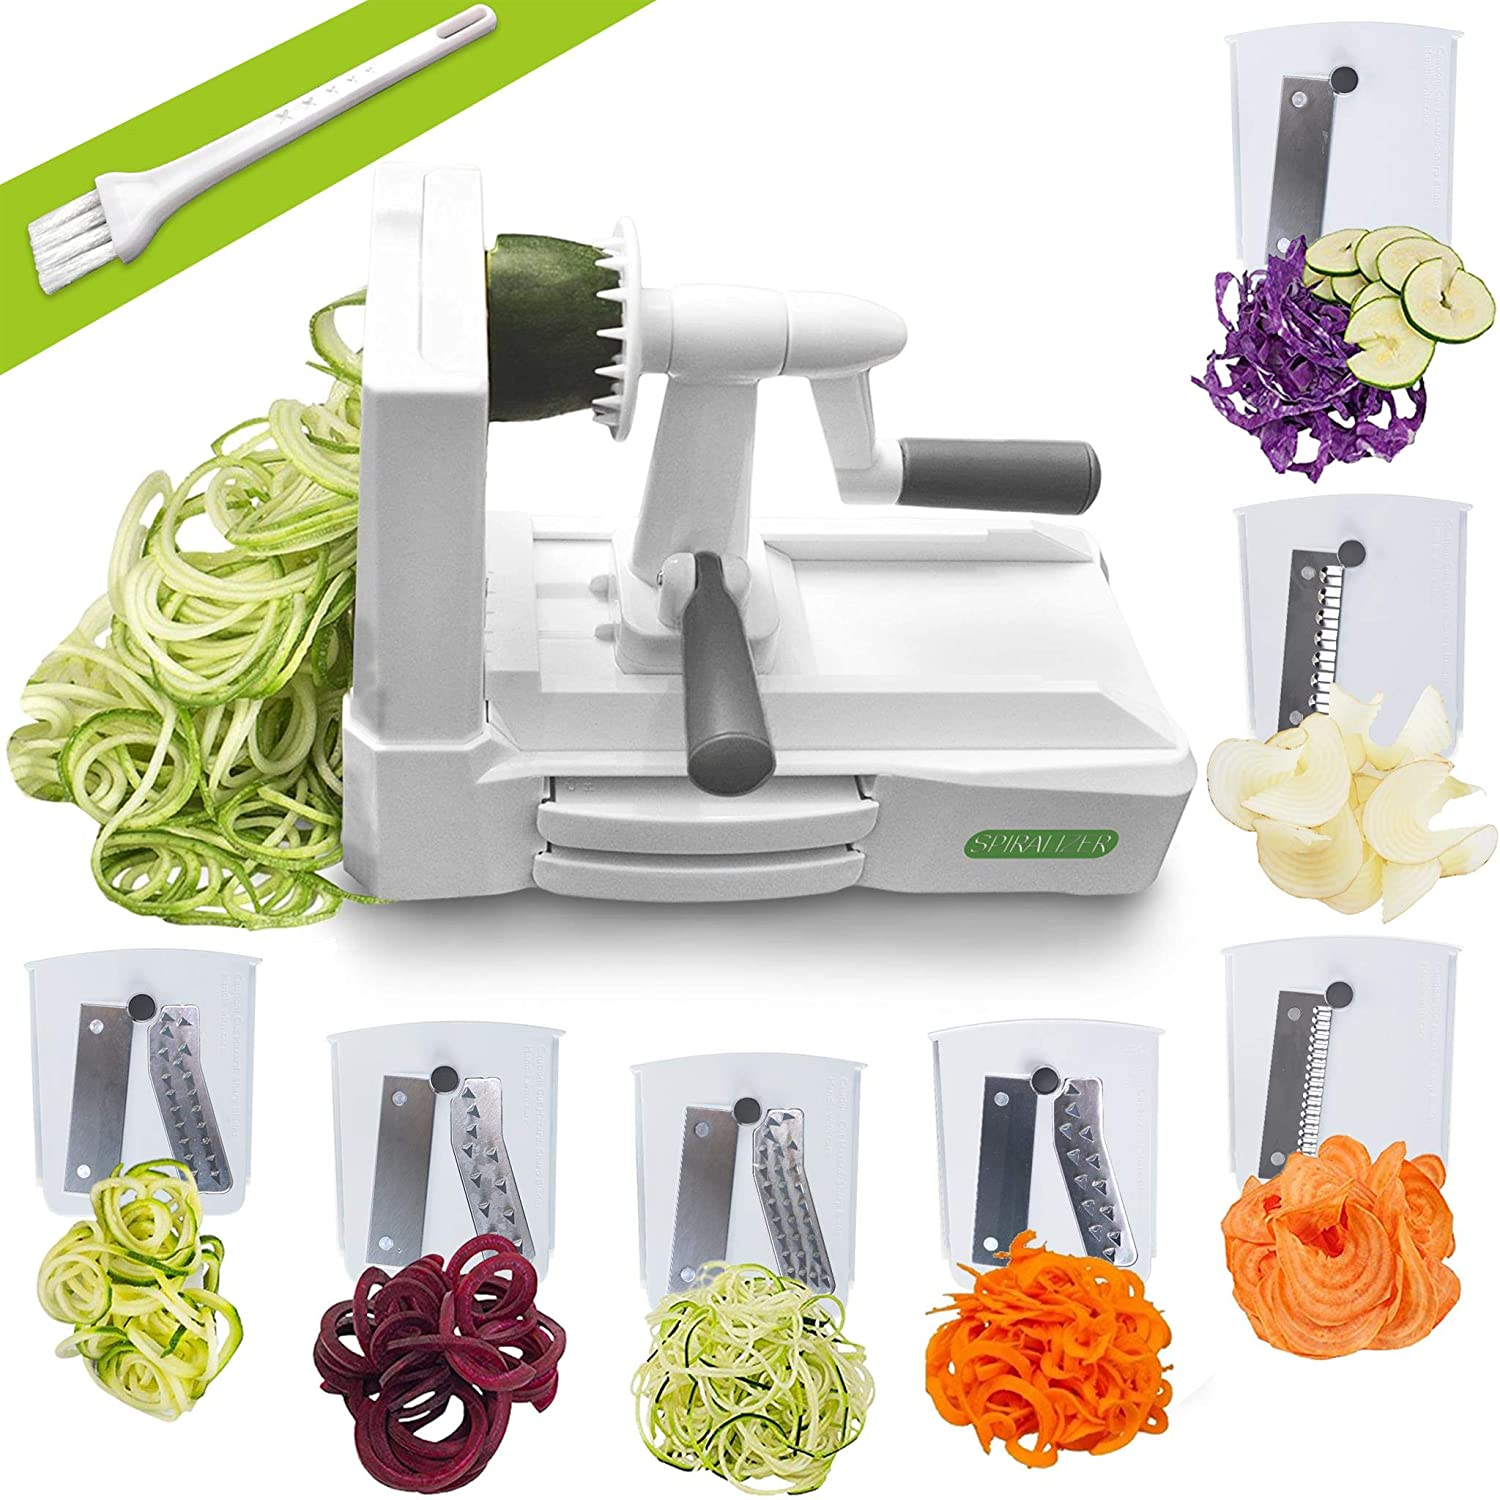 Spiralizer Ultimate 7-Blade Vegetable Slicer, Strongest-and-Heaviest Duty Vegetable Spiral Slicer, Best Veggie Pasta Spaghetti Maker for Keto/Paleo/Gluten-Free, With Extra Blade Caddy & 4 Recipe Ebook SP7